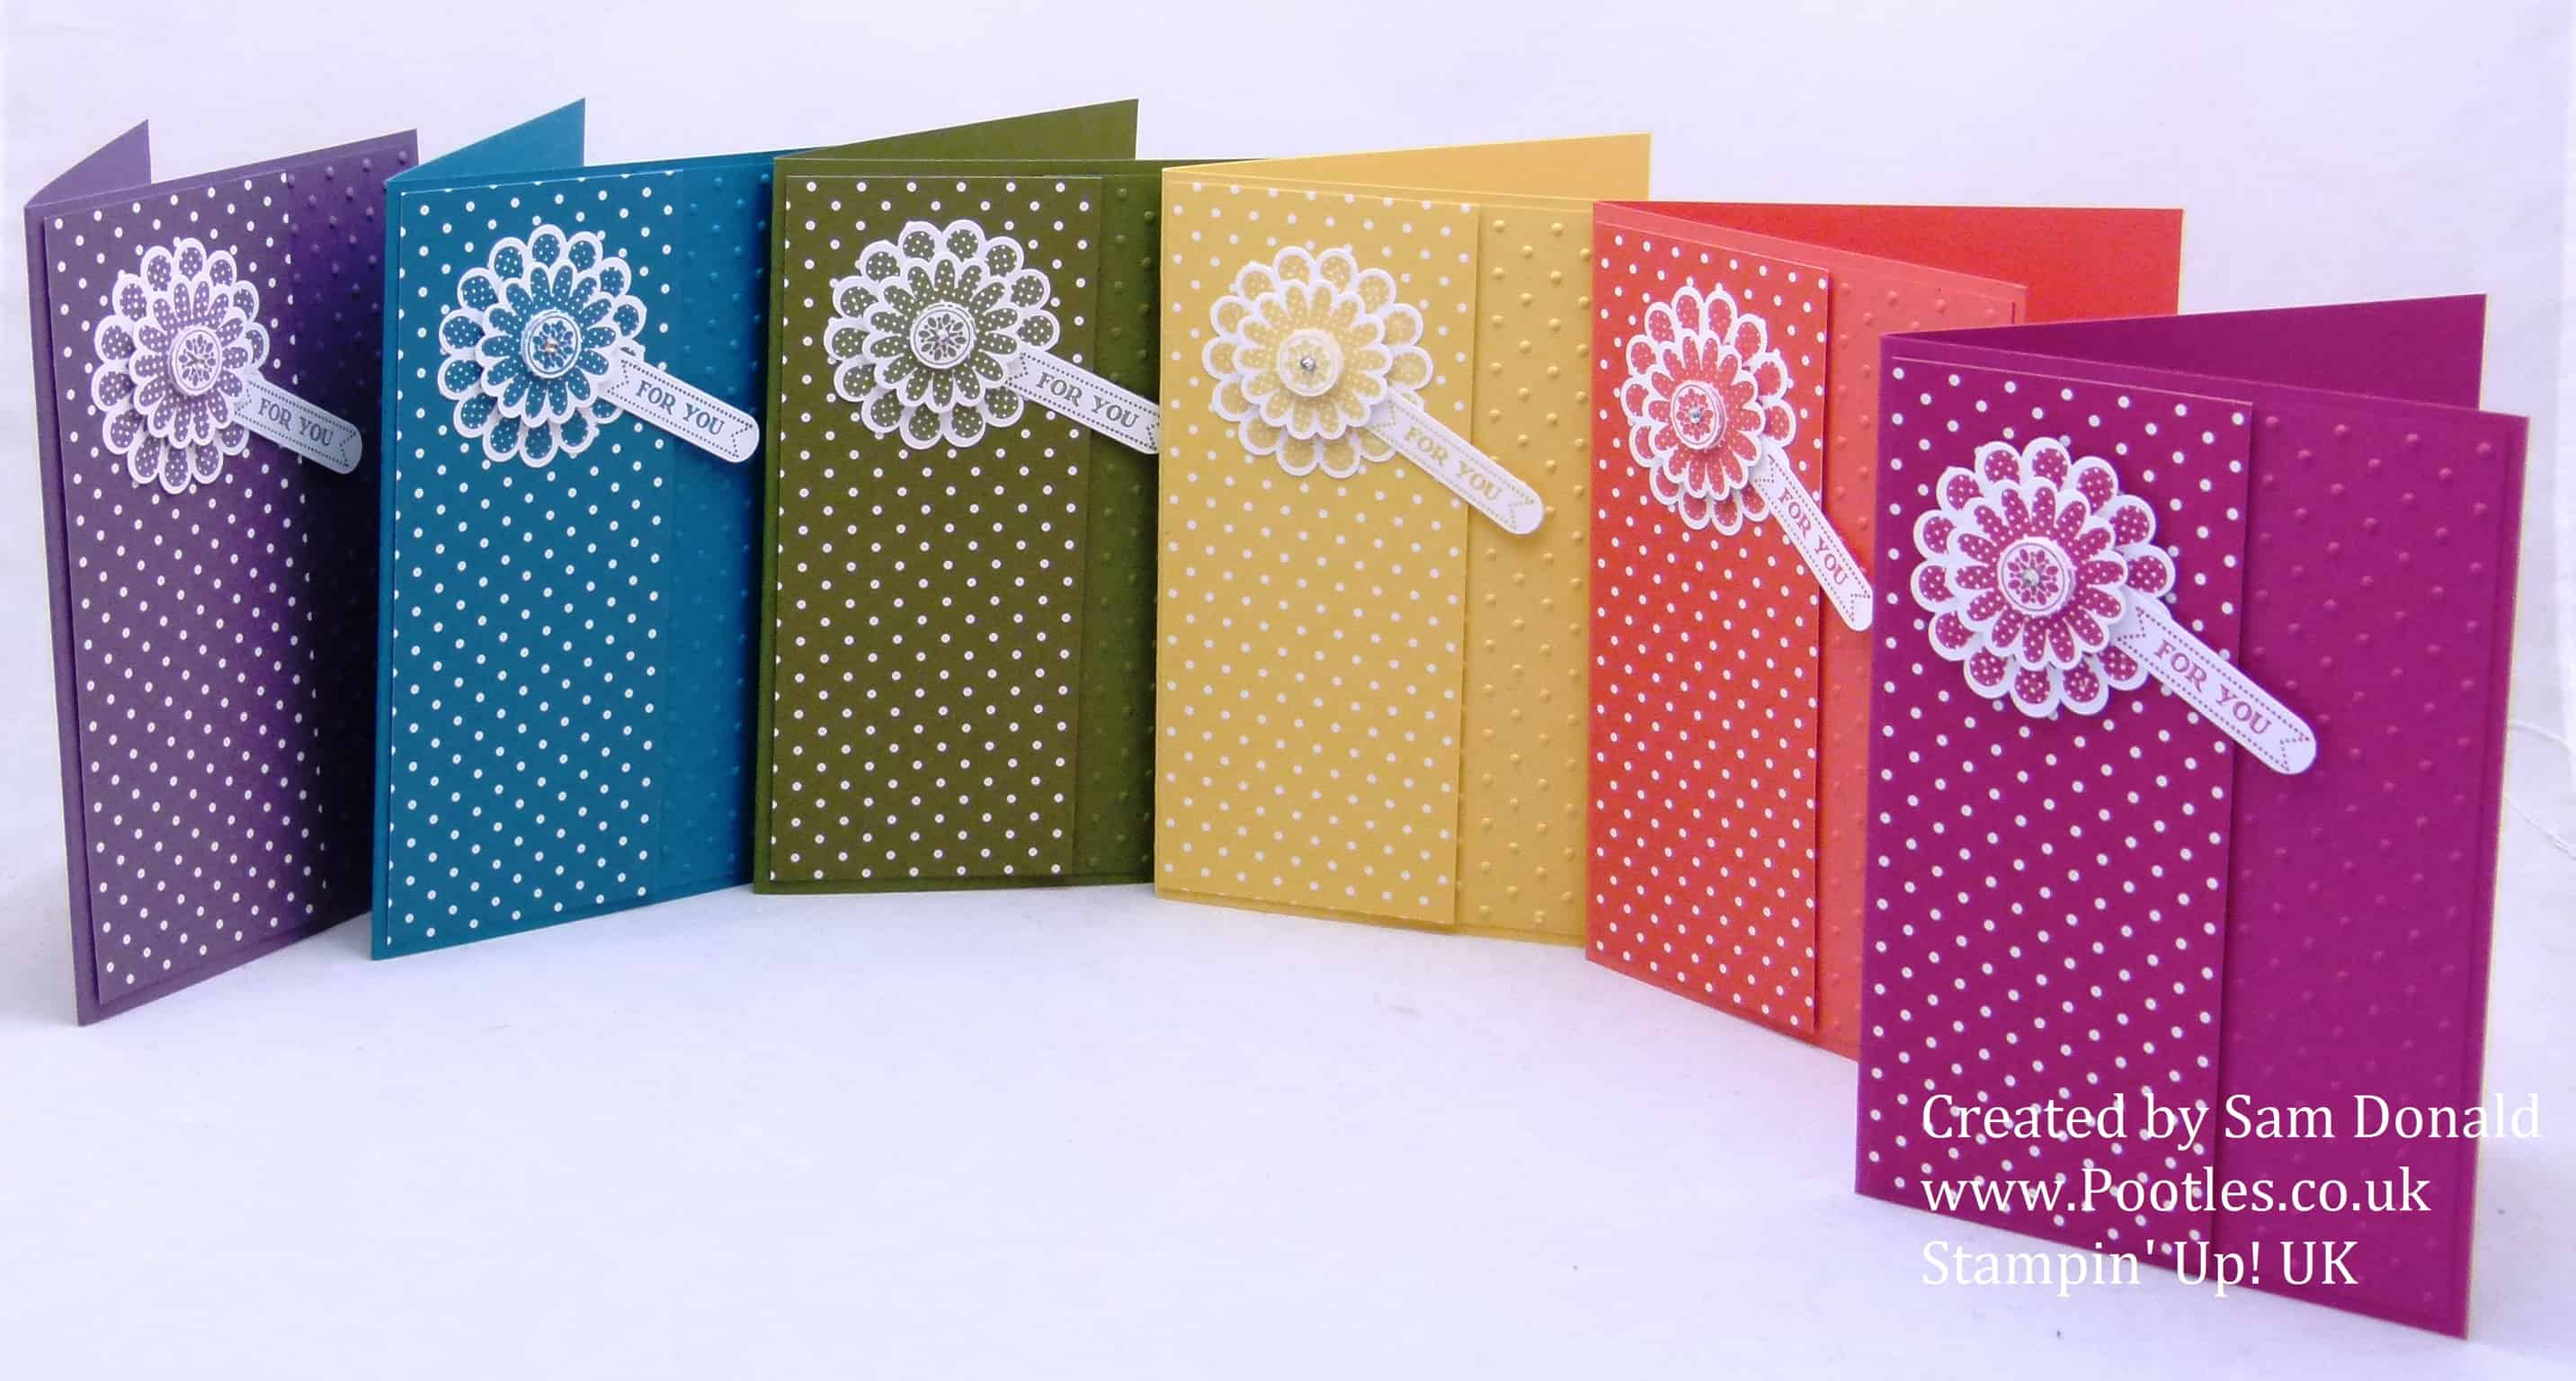 Pootles Stampin Up UK Polka Dot Pieces 6 (2)